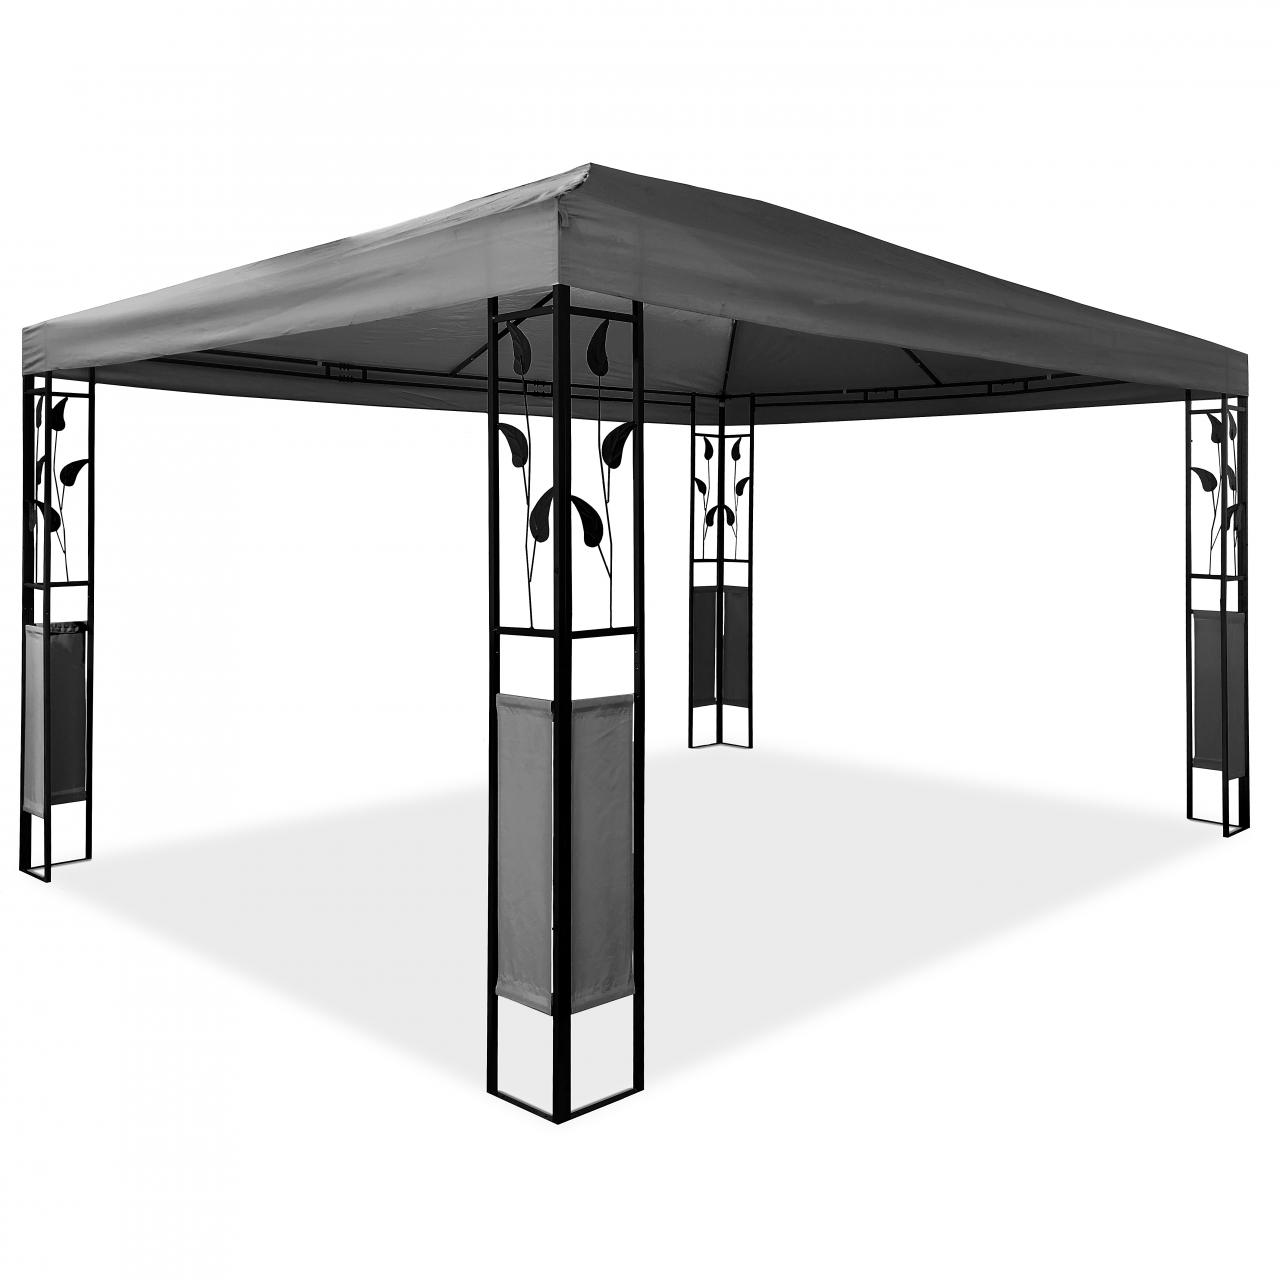 pavillon 3 x 4 m design gartenpavillon gartenzelt festzelt. Black Bedroom Furniture Sets. Home Design Ideas